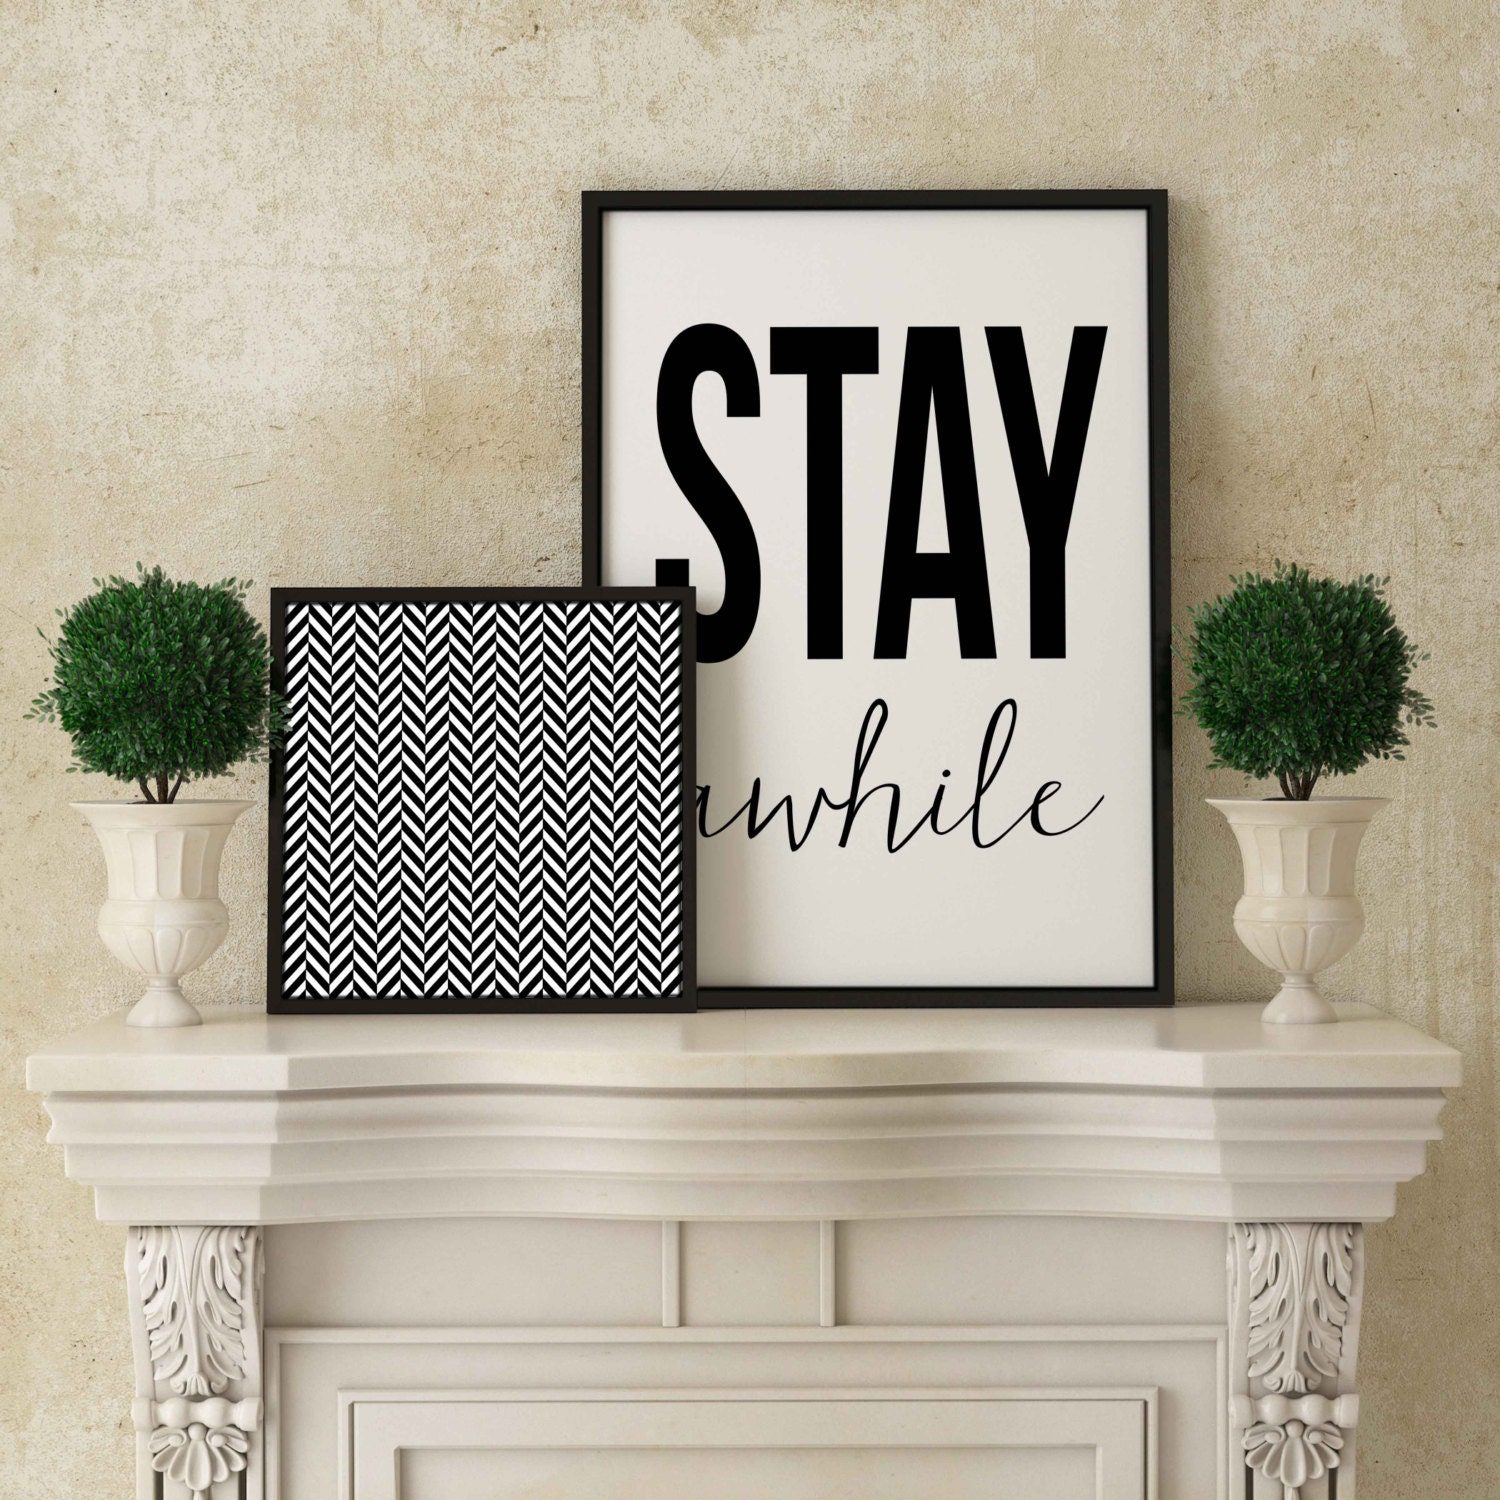 Stay awhile welcome sign home decor instant download diy for Diy welcome home decorations